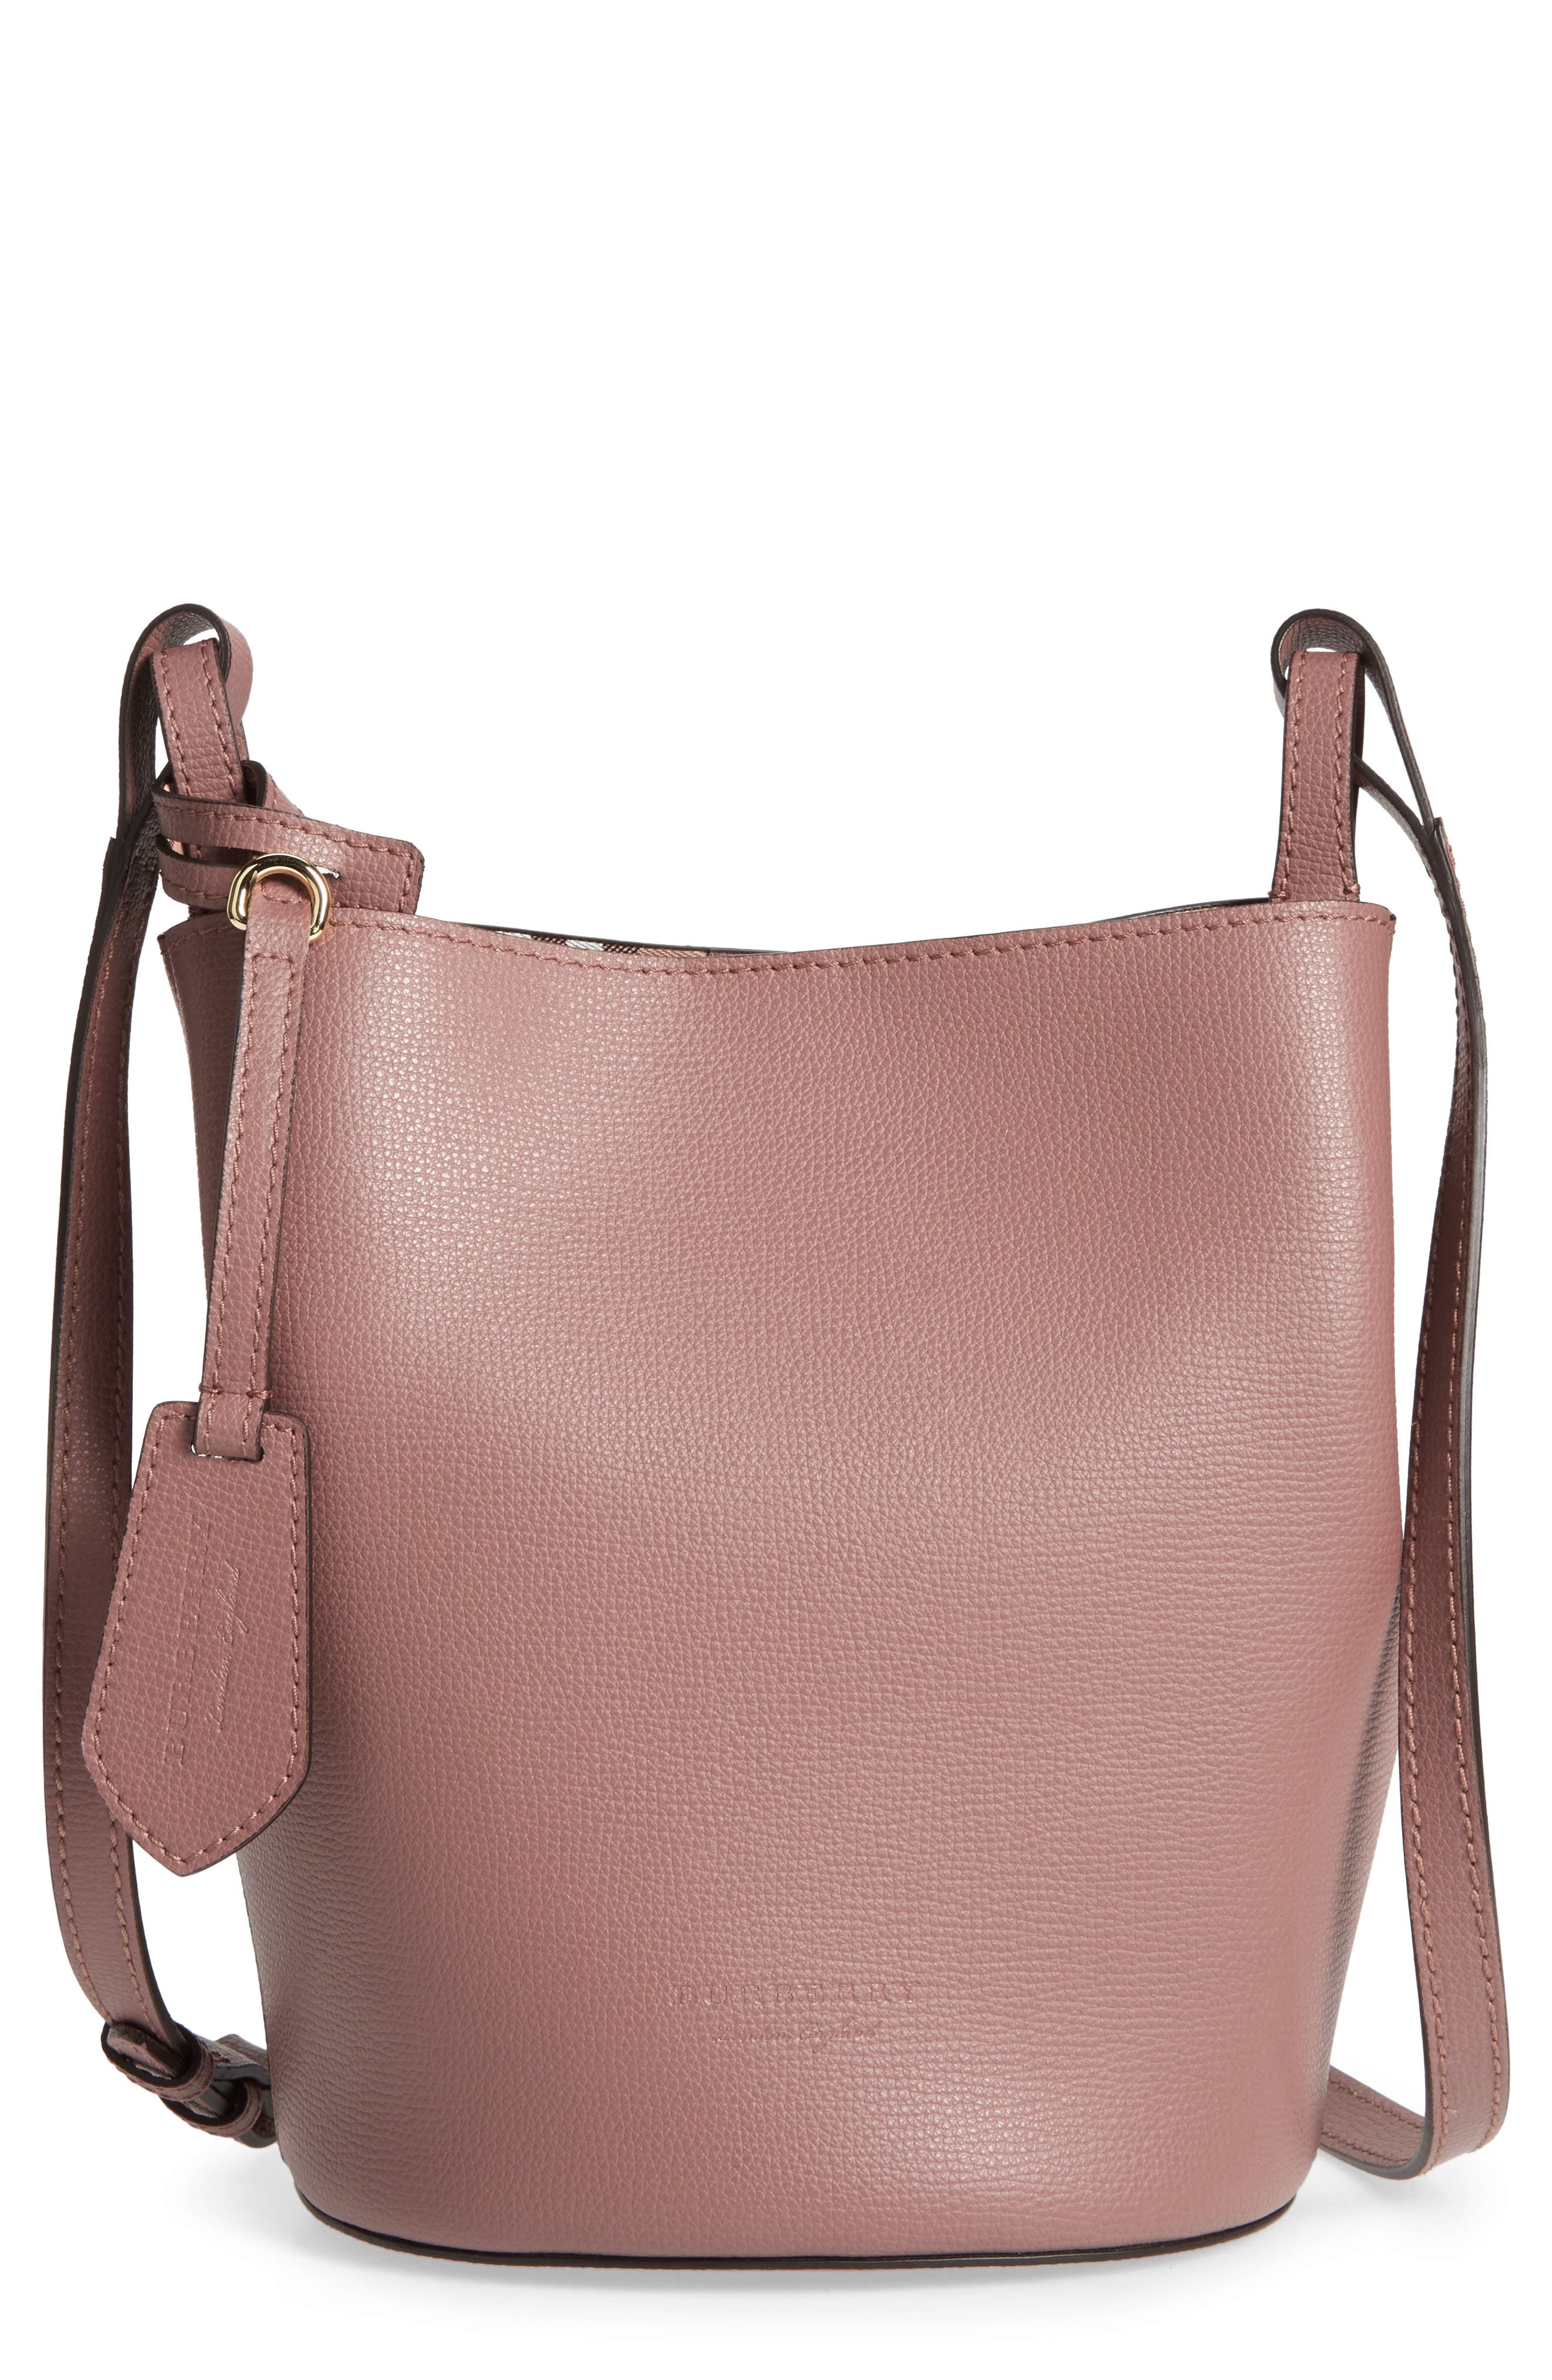 Main Image - Burberry Small Lorne Leather Bucket Bag